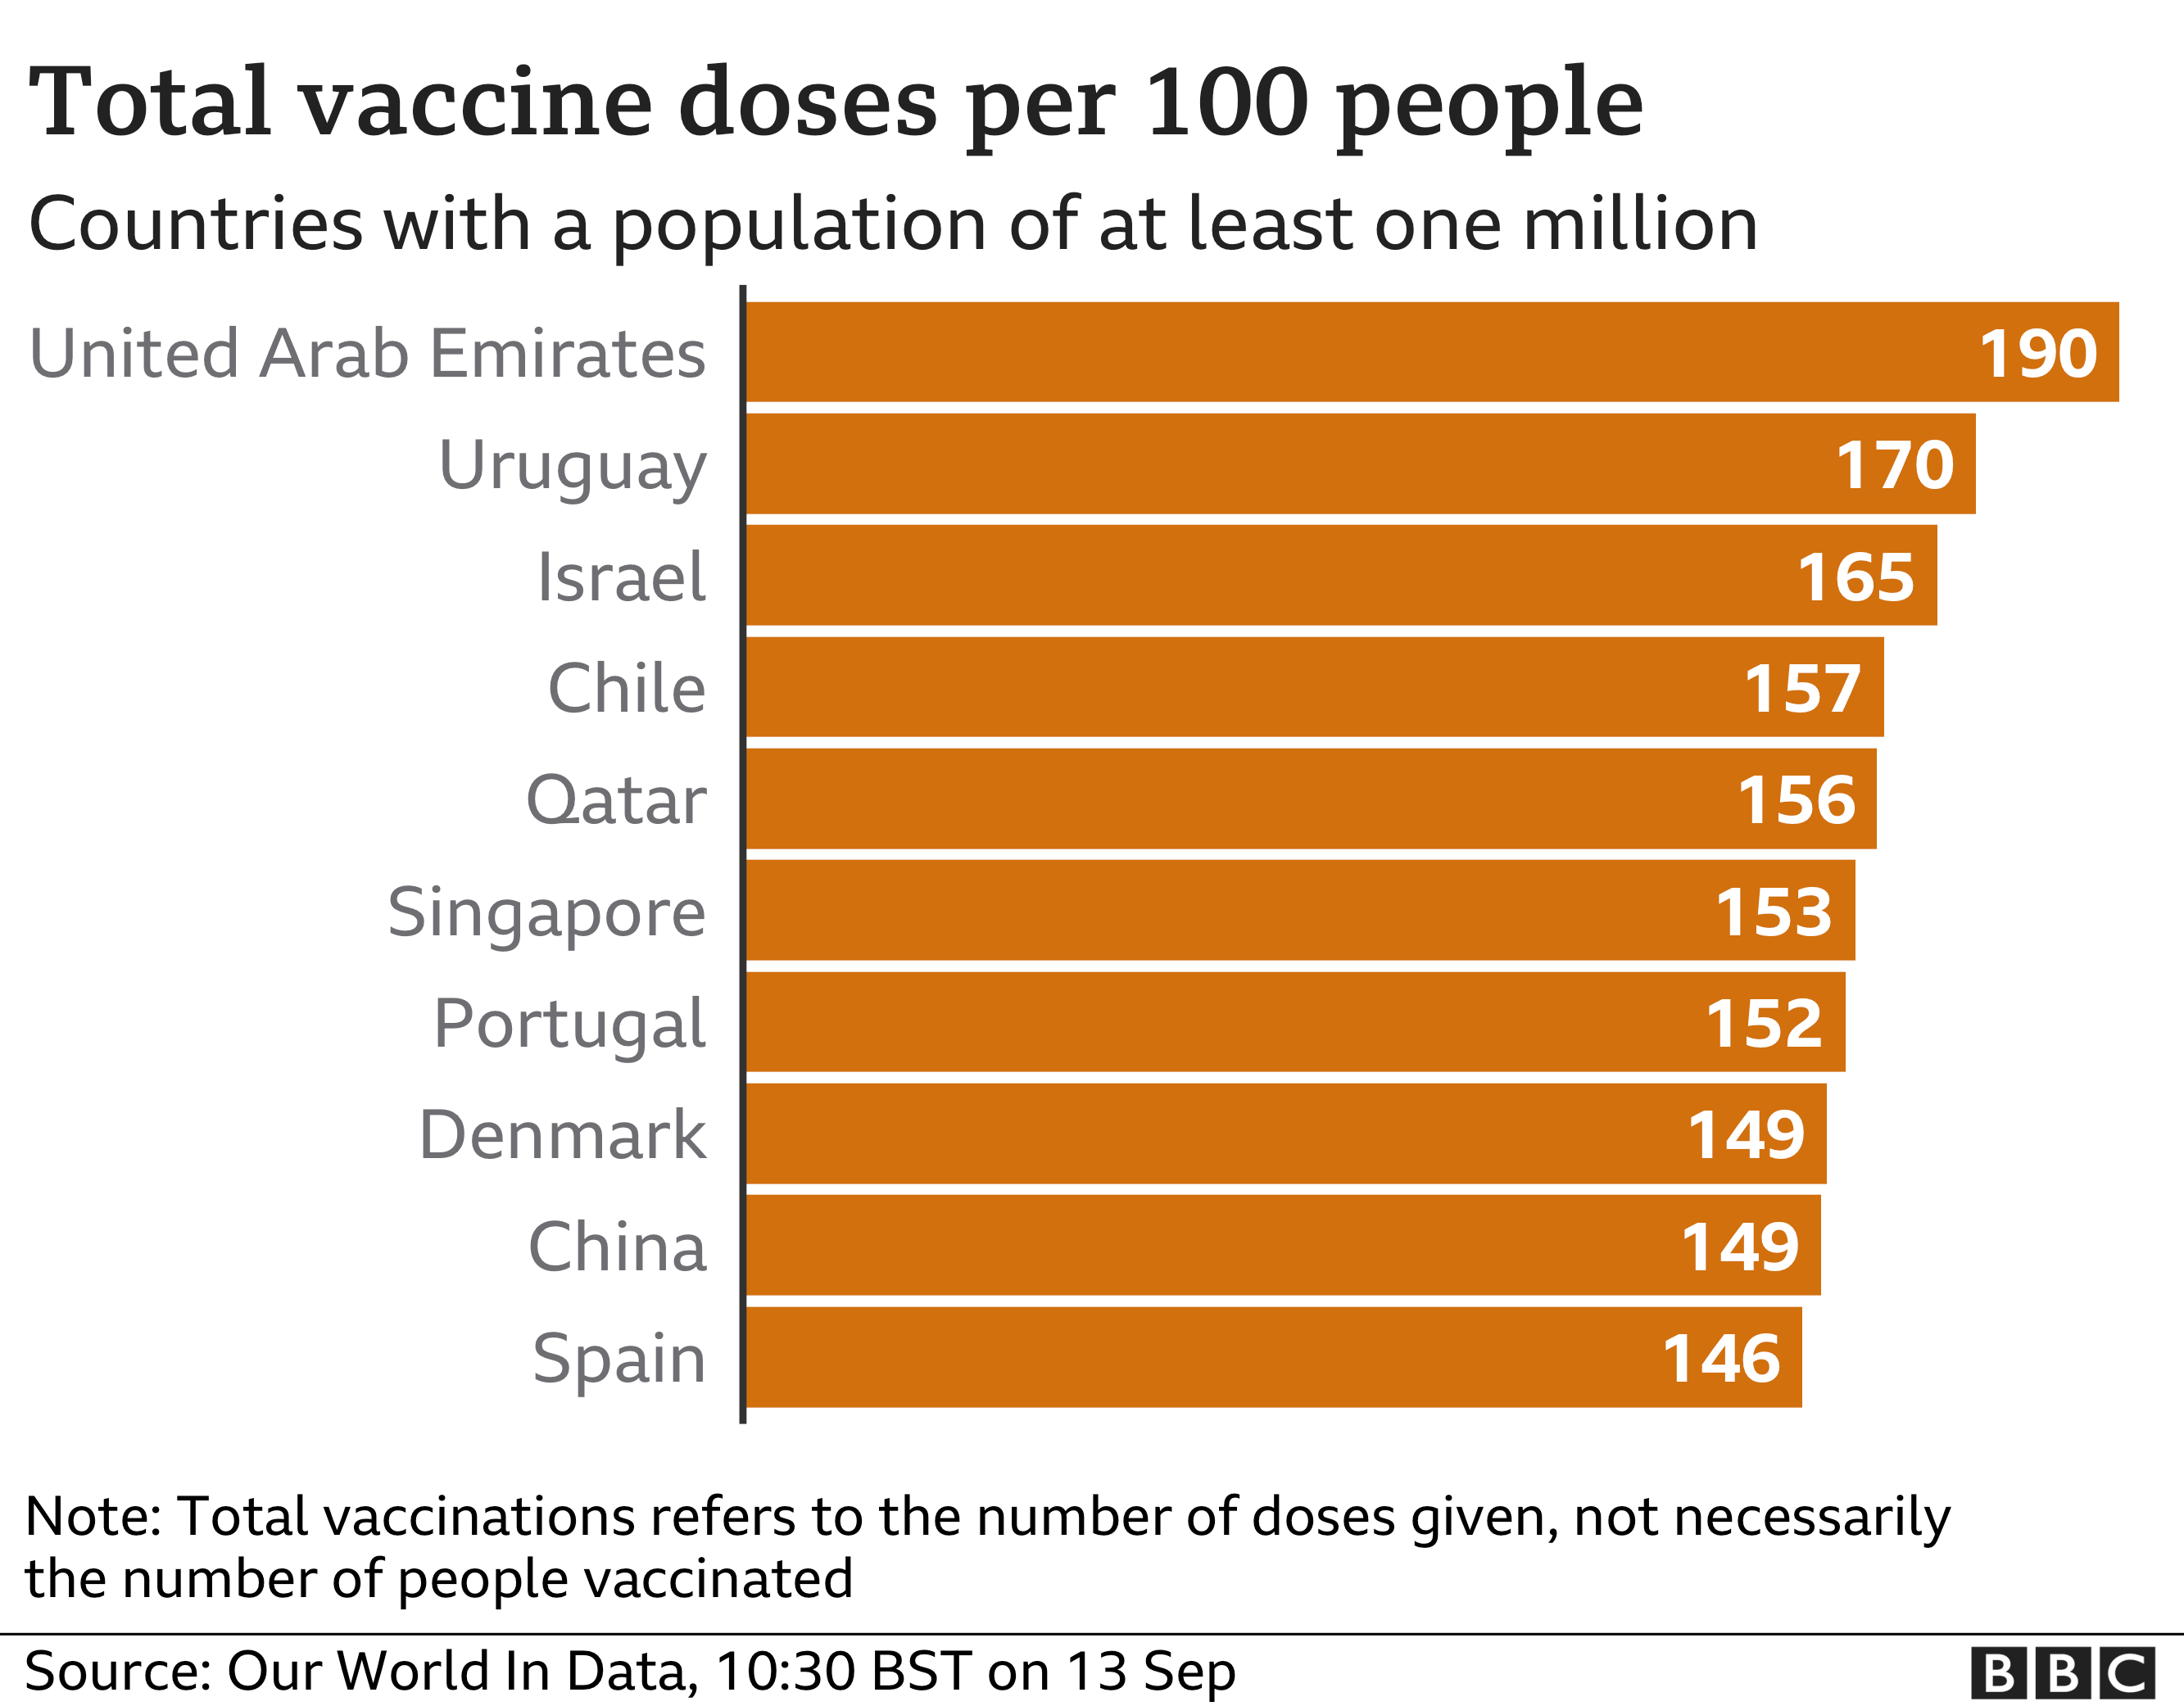 Chart showing vaccine doses per 100 people in countries where the population is over one million